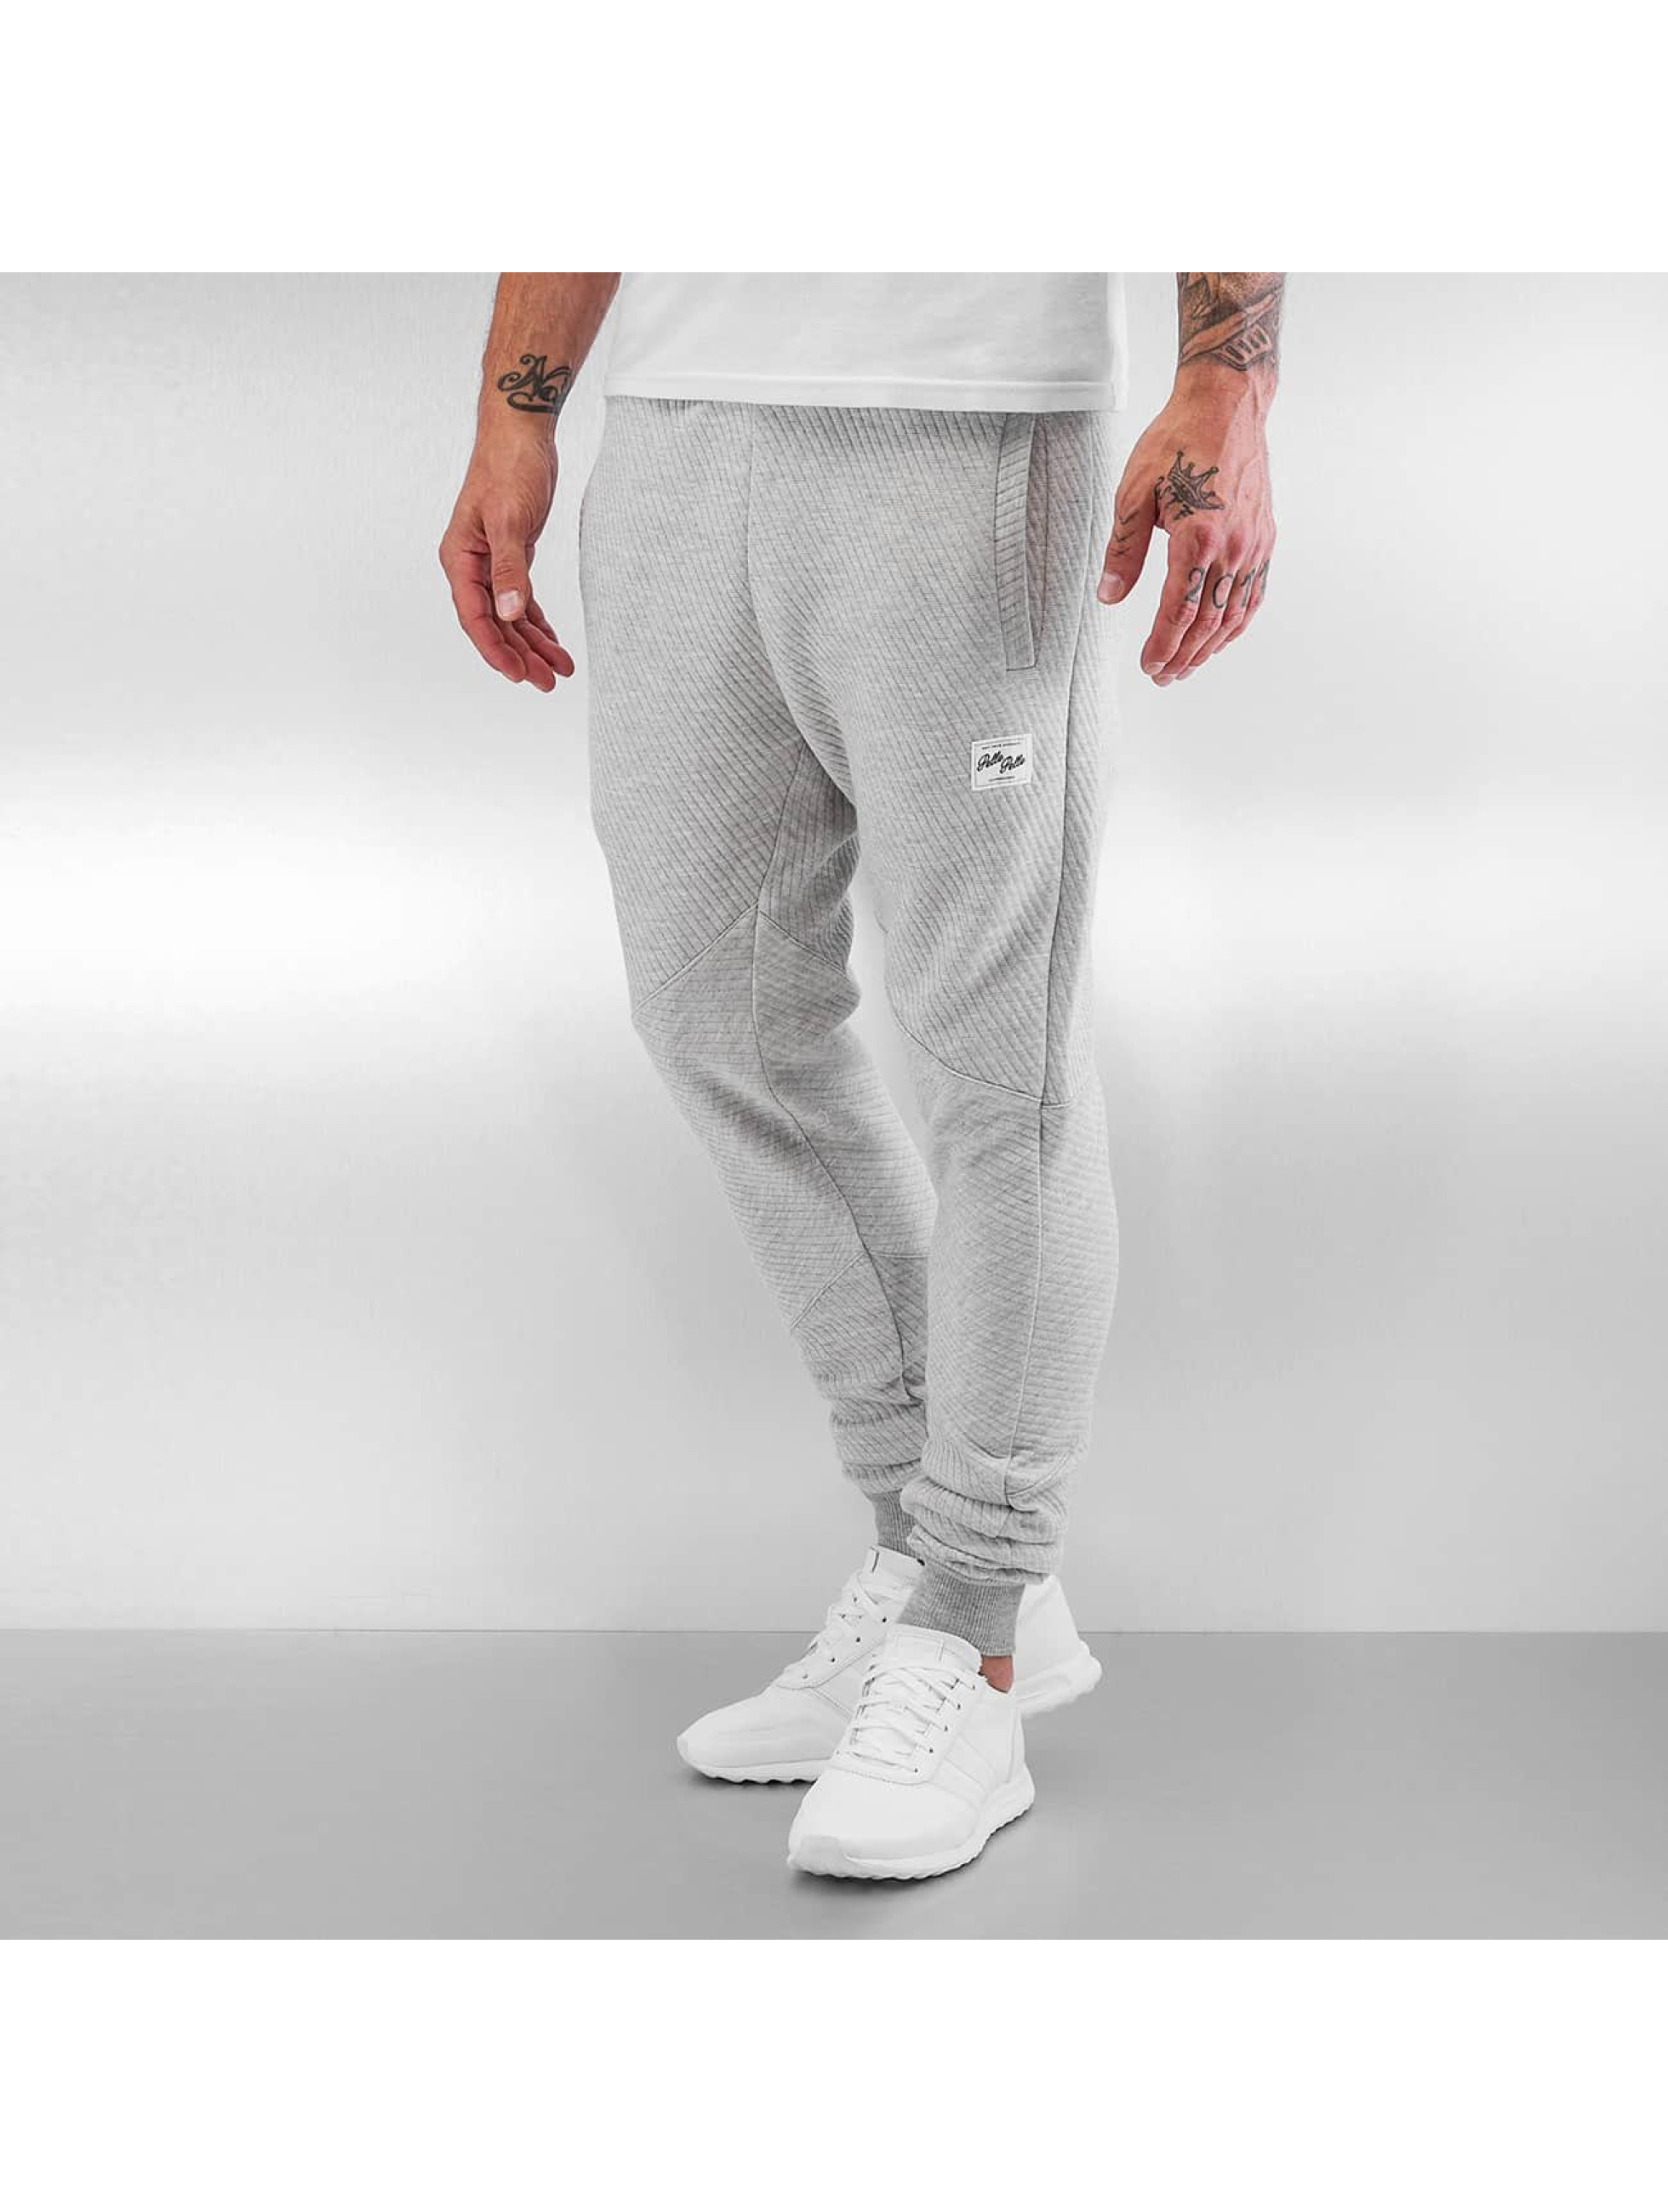 Pelle Directions Sweatpants Ash Sale Angebote Ruhland